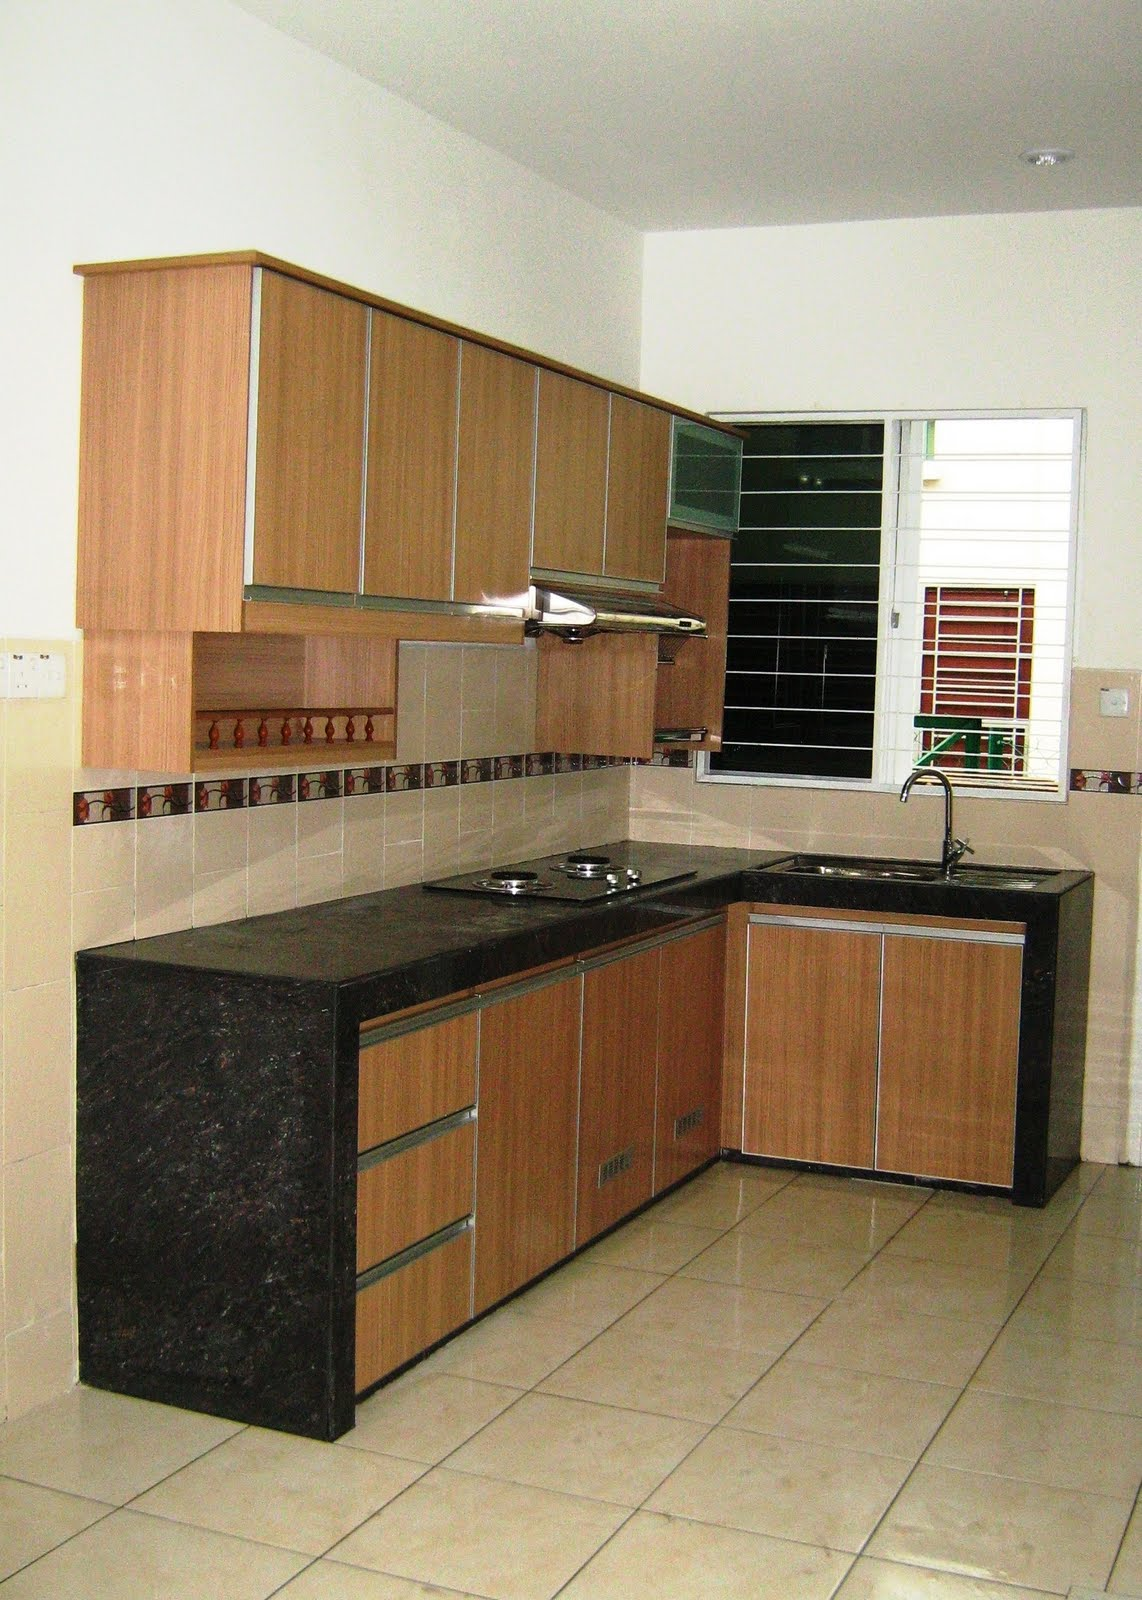 The Fascinating Kitchen cabinets images pictures Photo